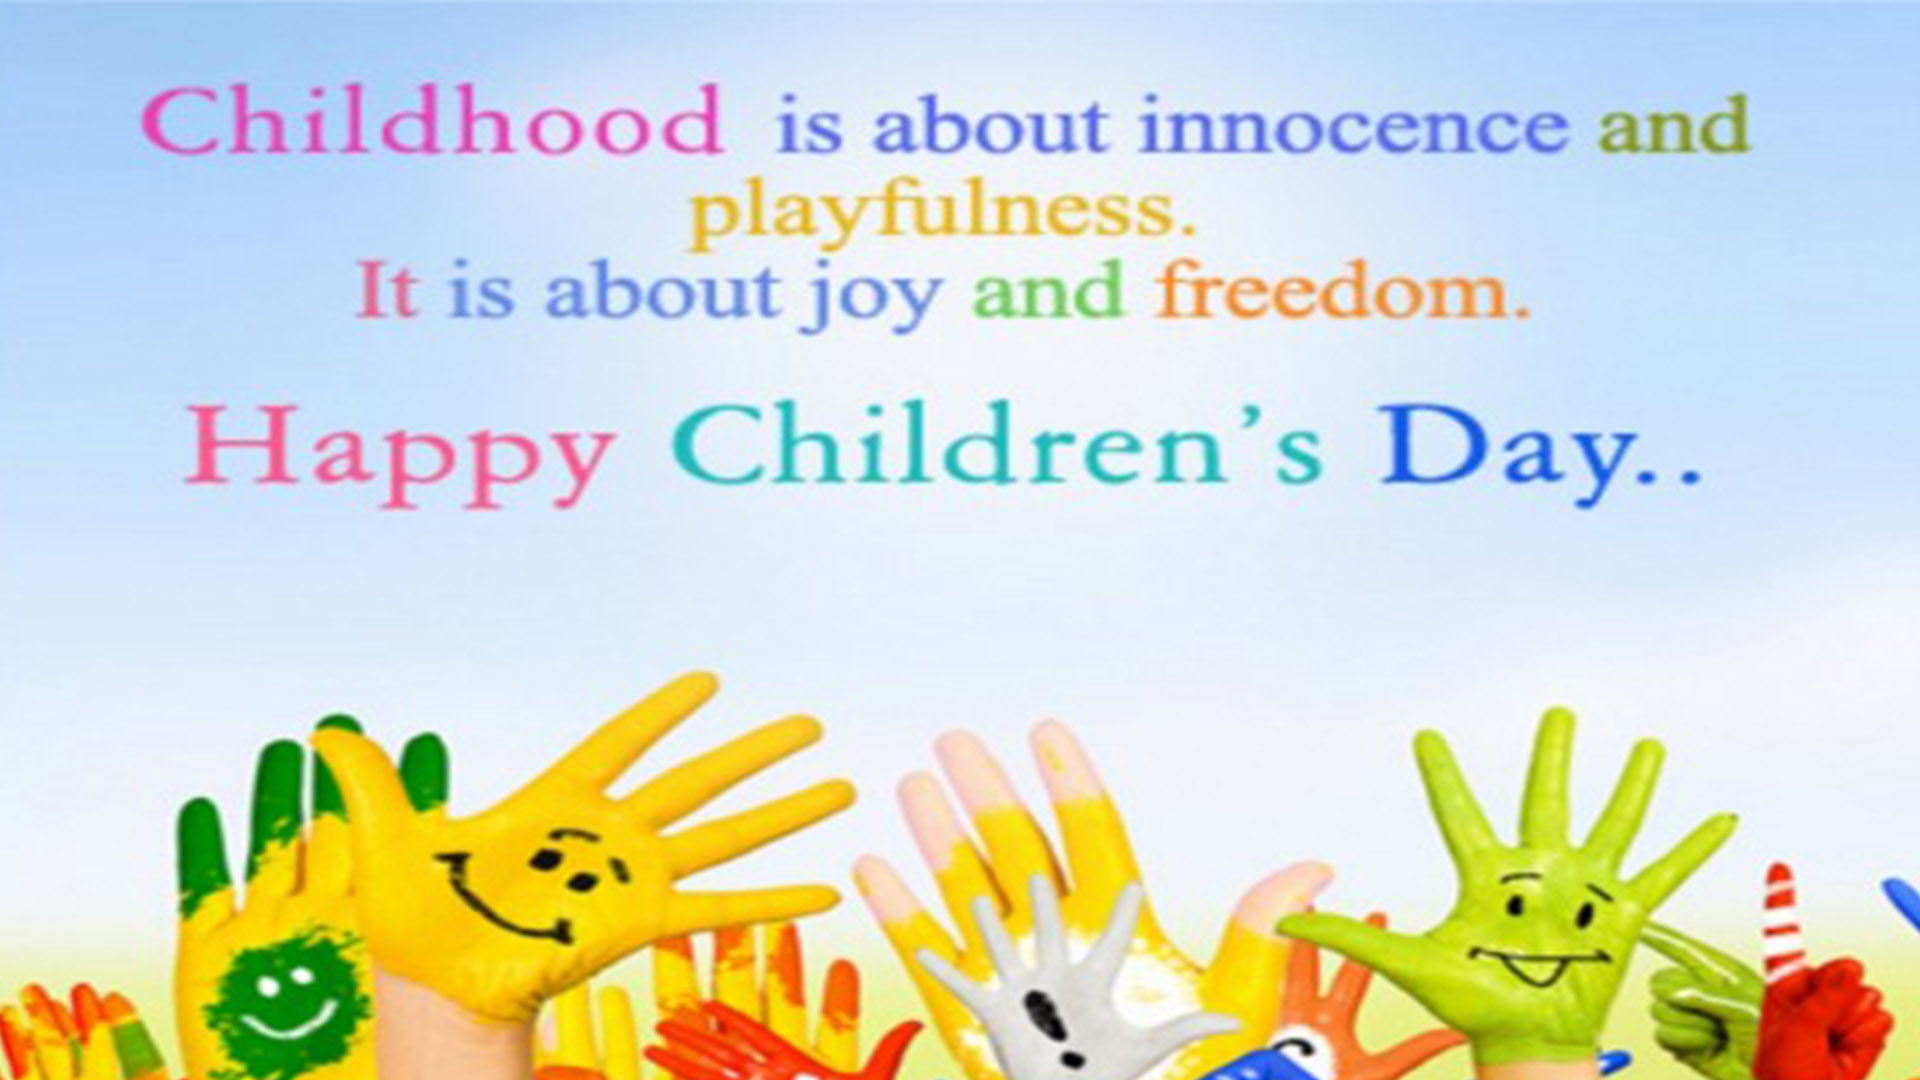 Happy Childrens Day Quotes Images | Universal Children's Day